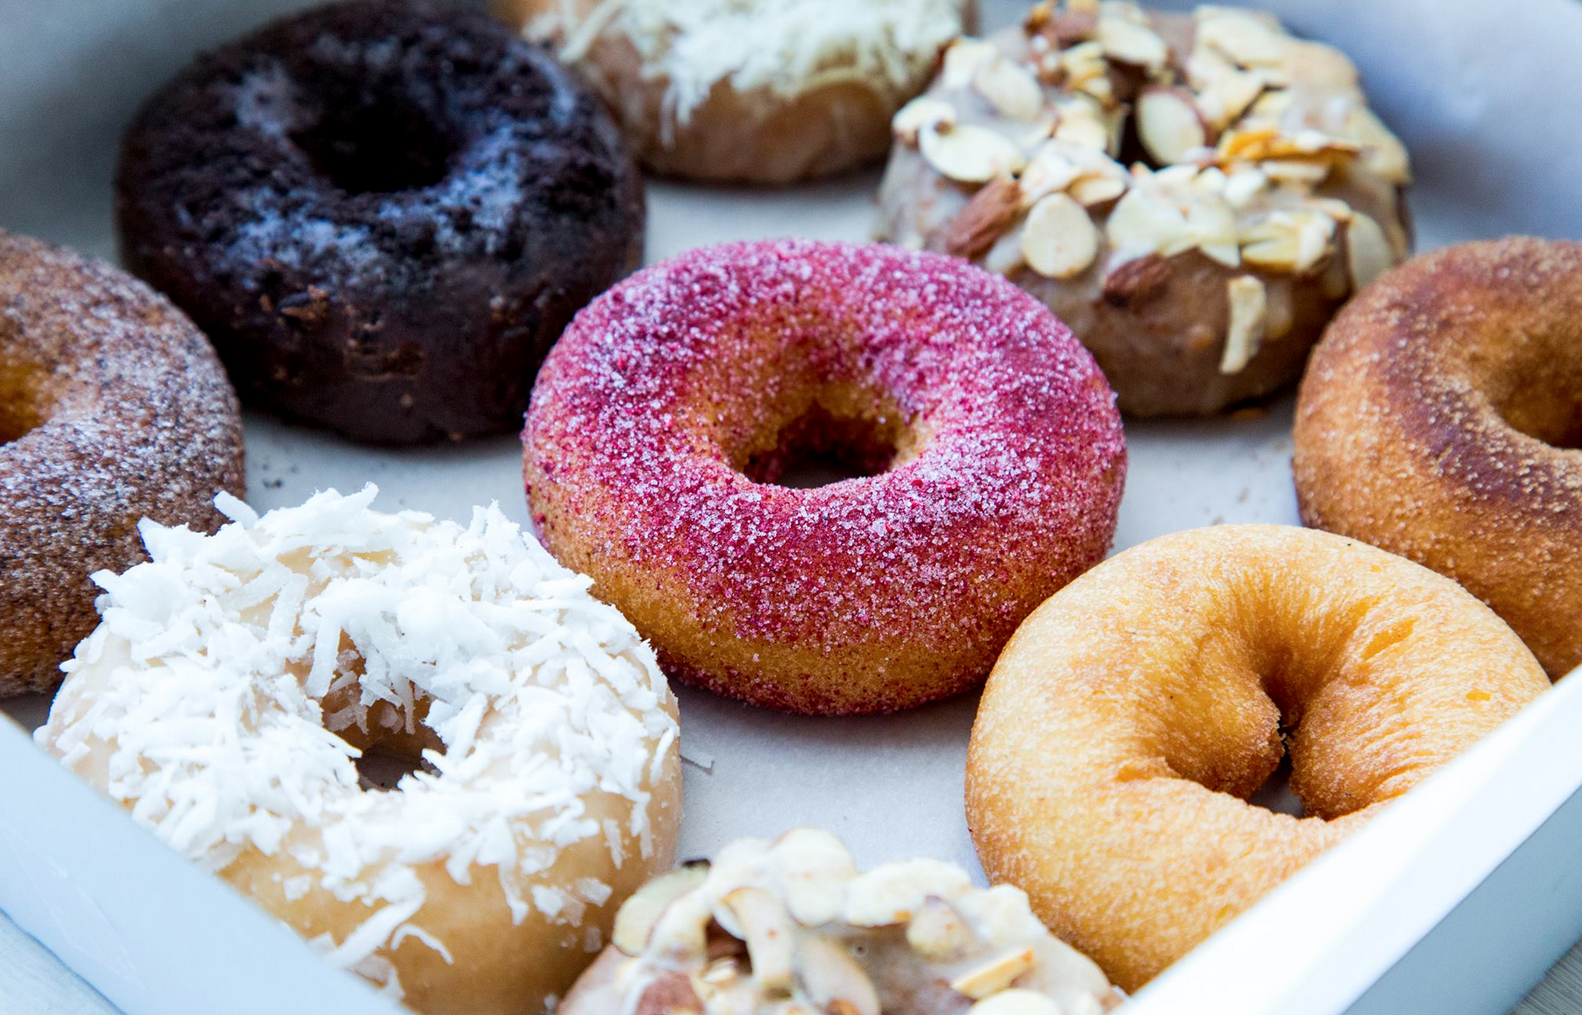 The Best Donut Spots in New York City